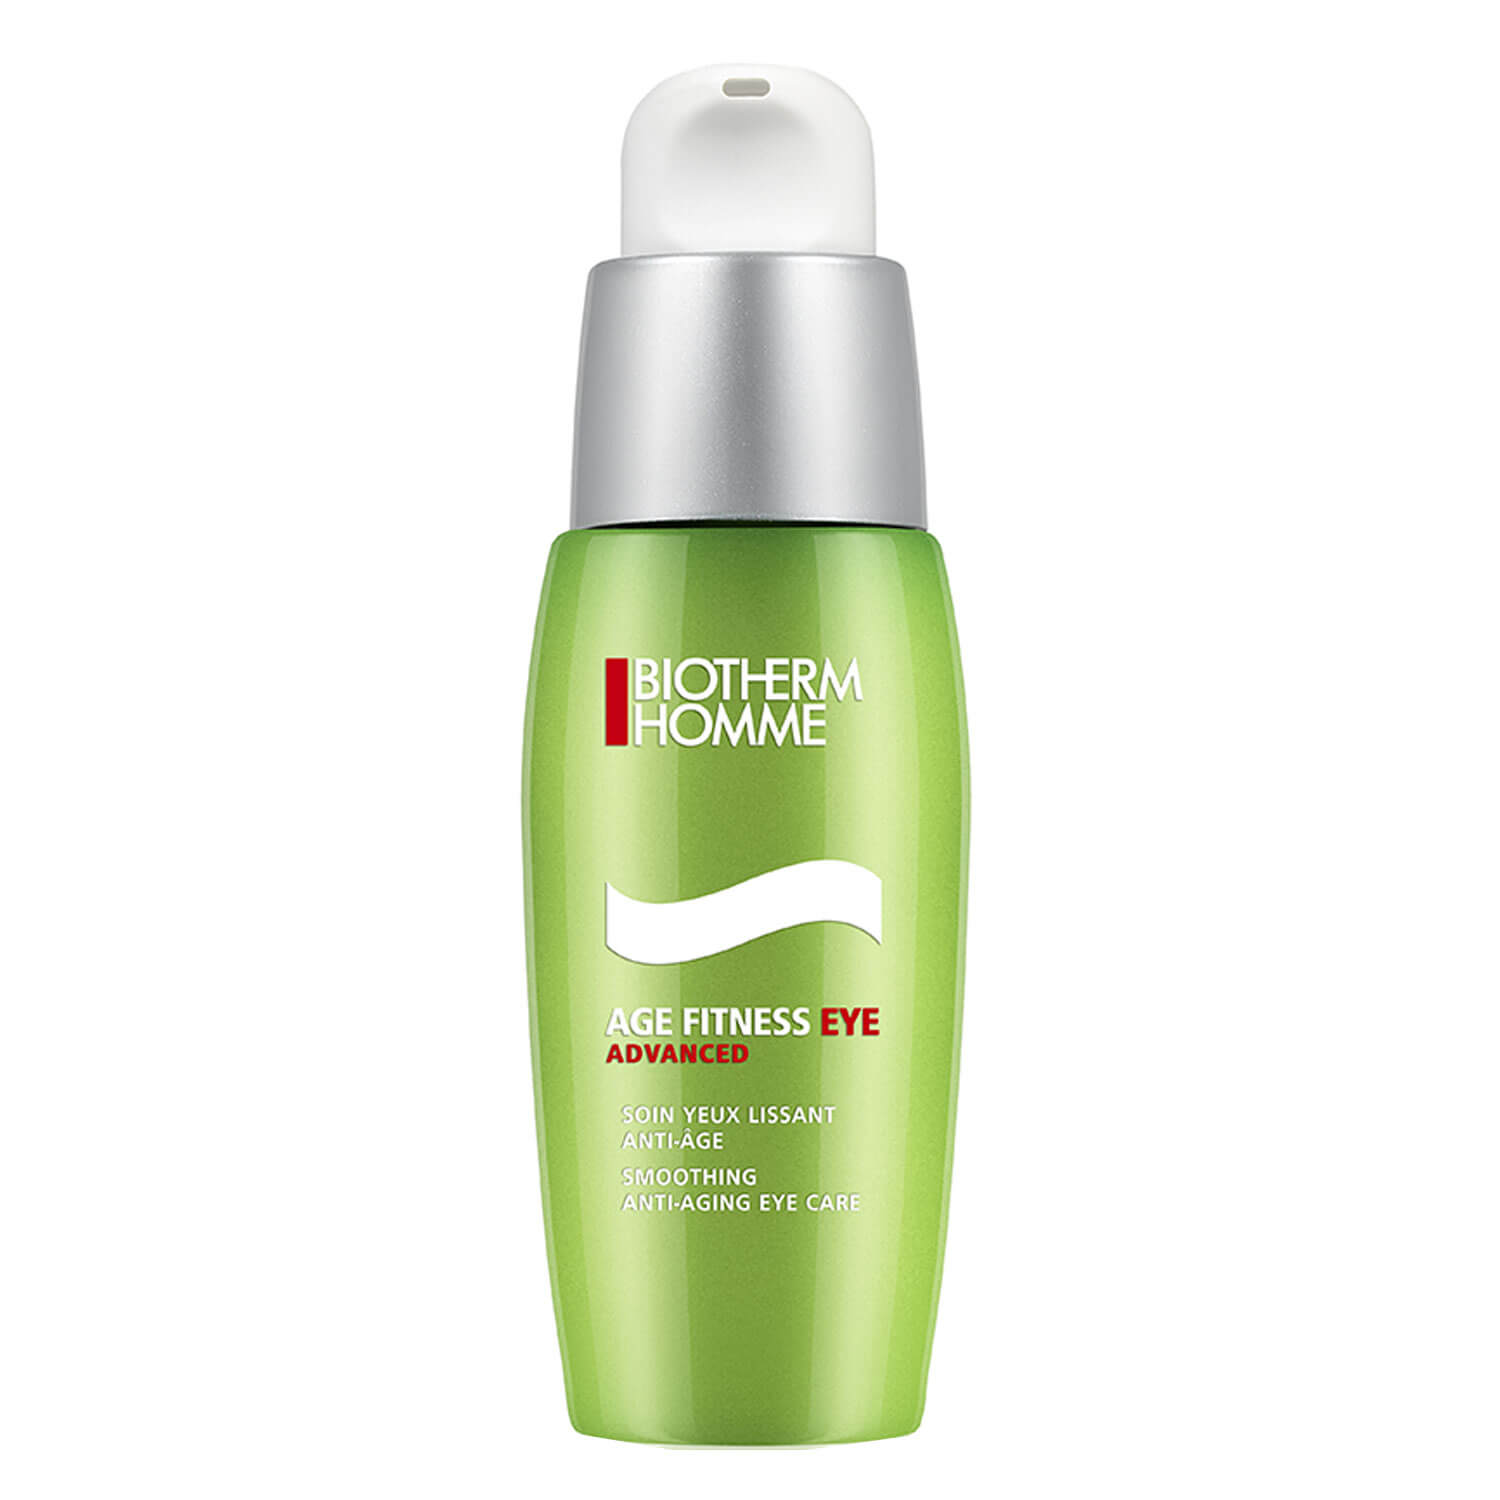 Biotherm Homme - Age Fitness Eye Advanced